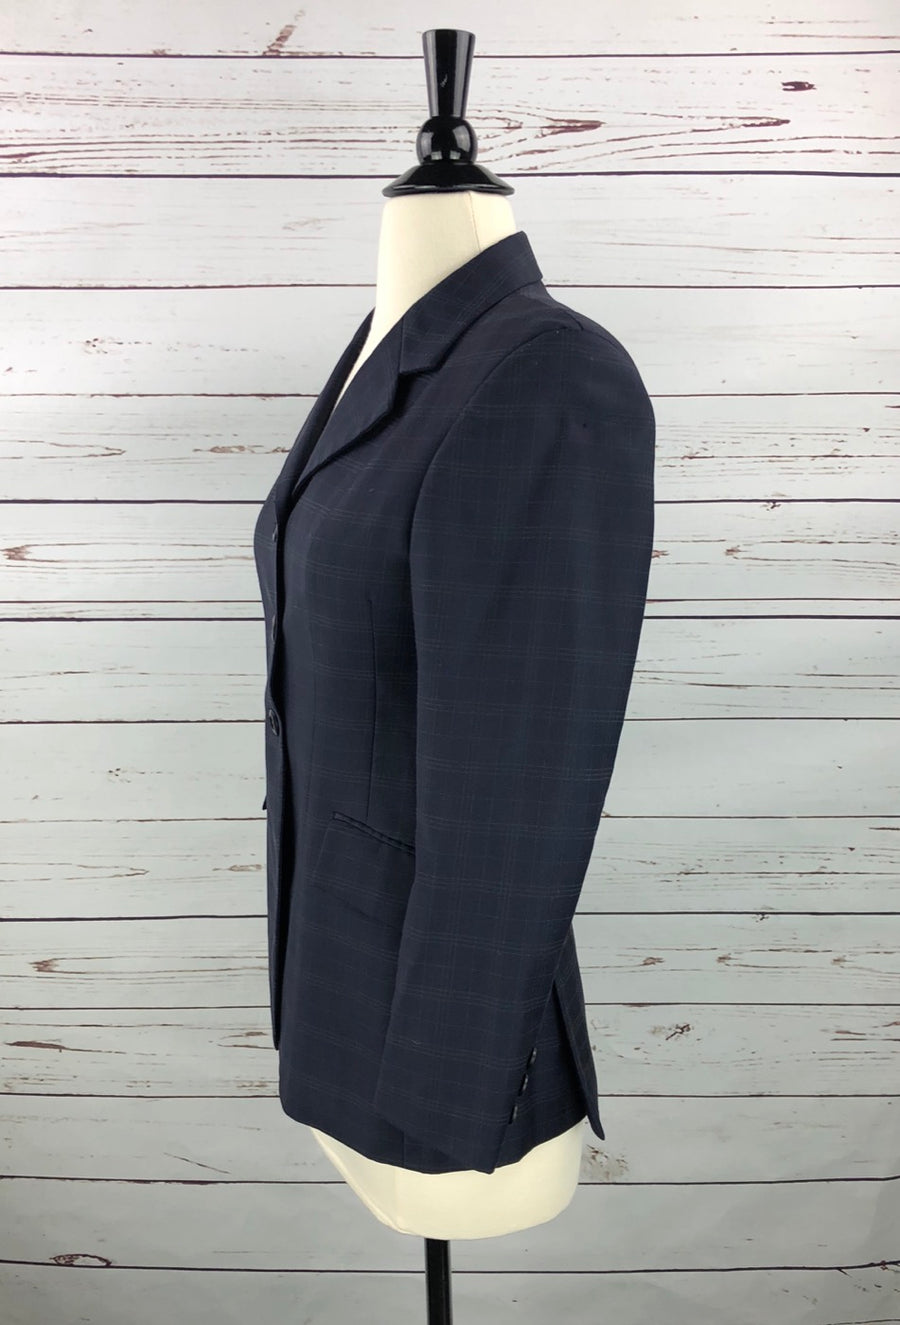 Grand Prix Hunt Coat in Navy - Left Side View